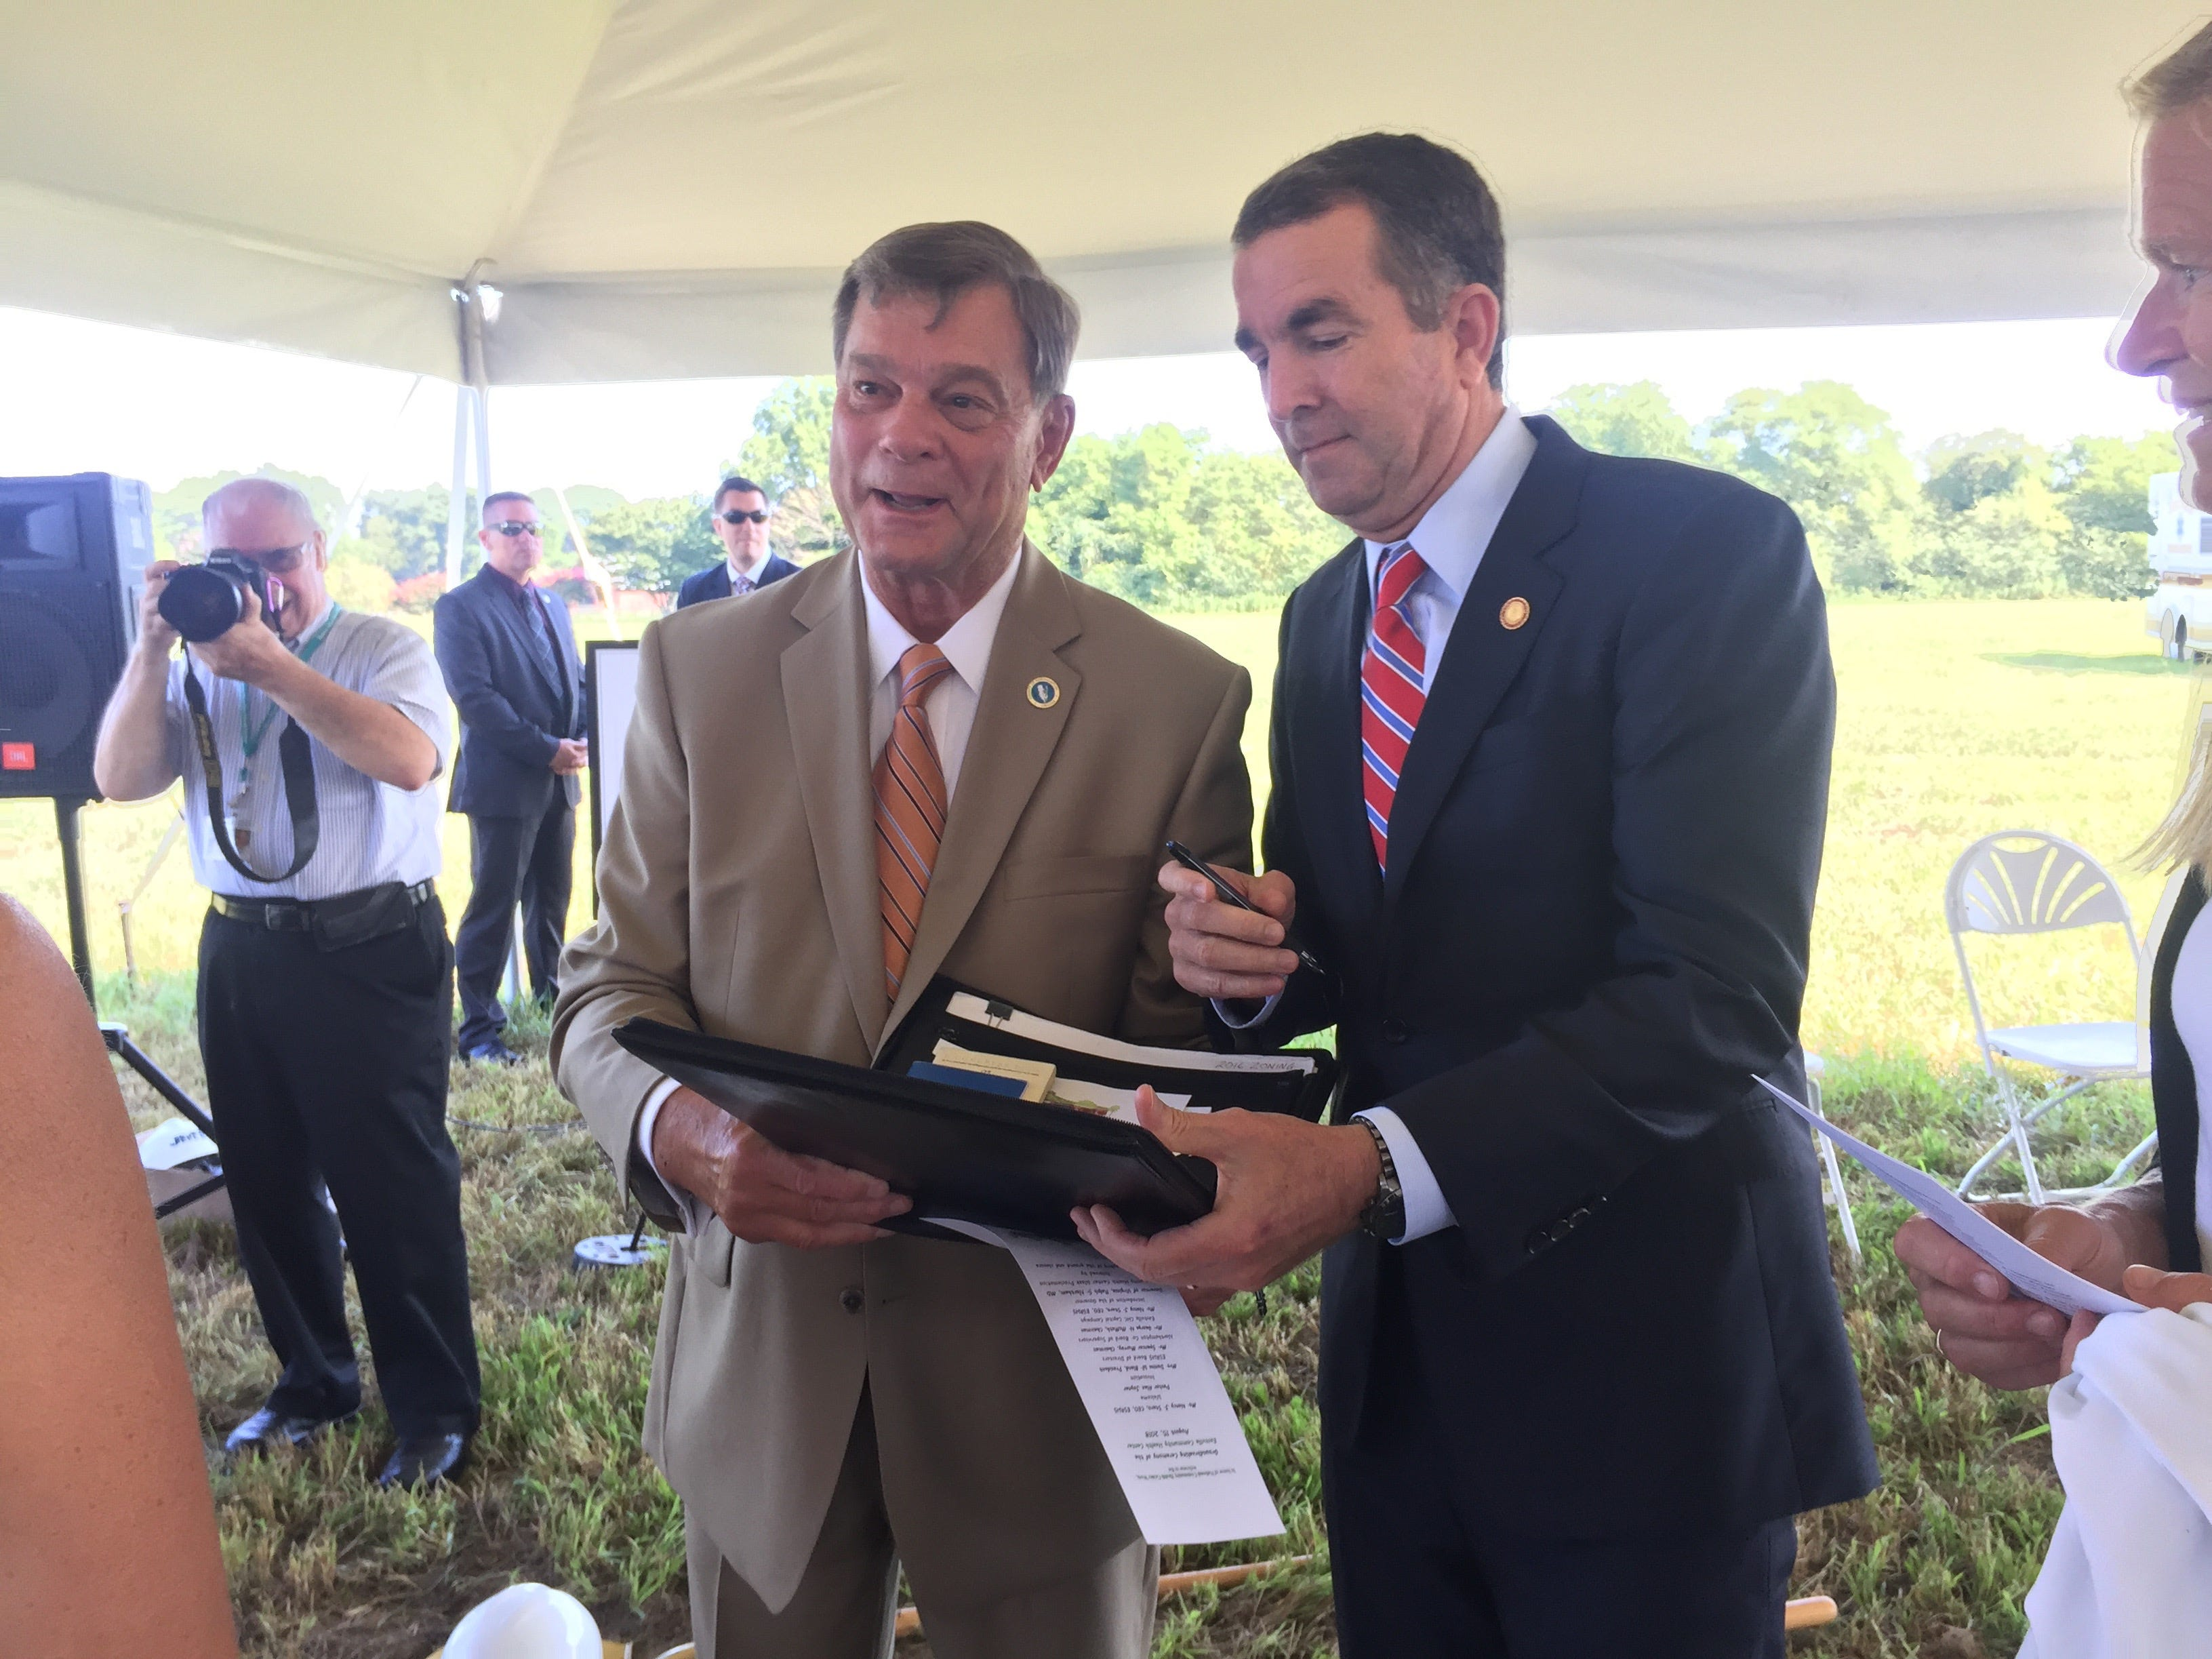 Spencer Murray, left, poses with Gov. Ralph Northam at a groundbreaking ceremony for Eastville Community Health Center in Eastville, Virginia on Wednesday, Aug. 15, 2018.